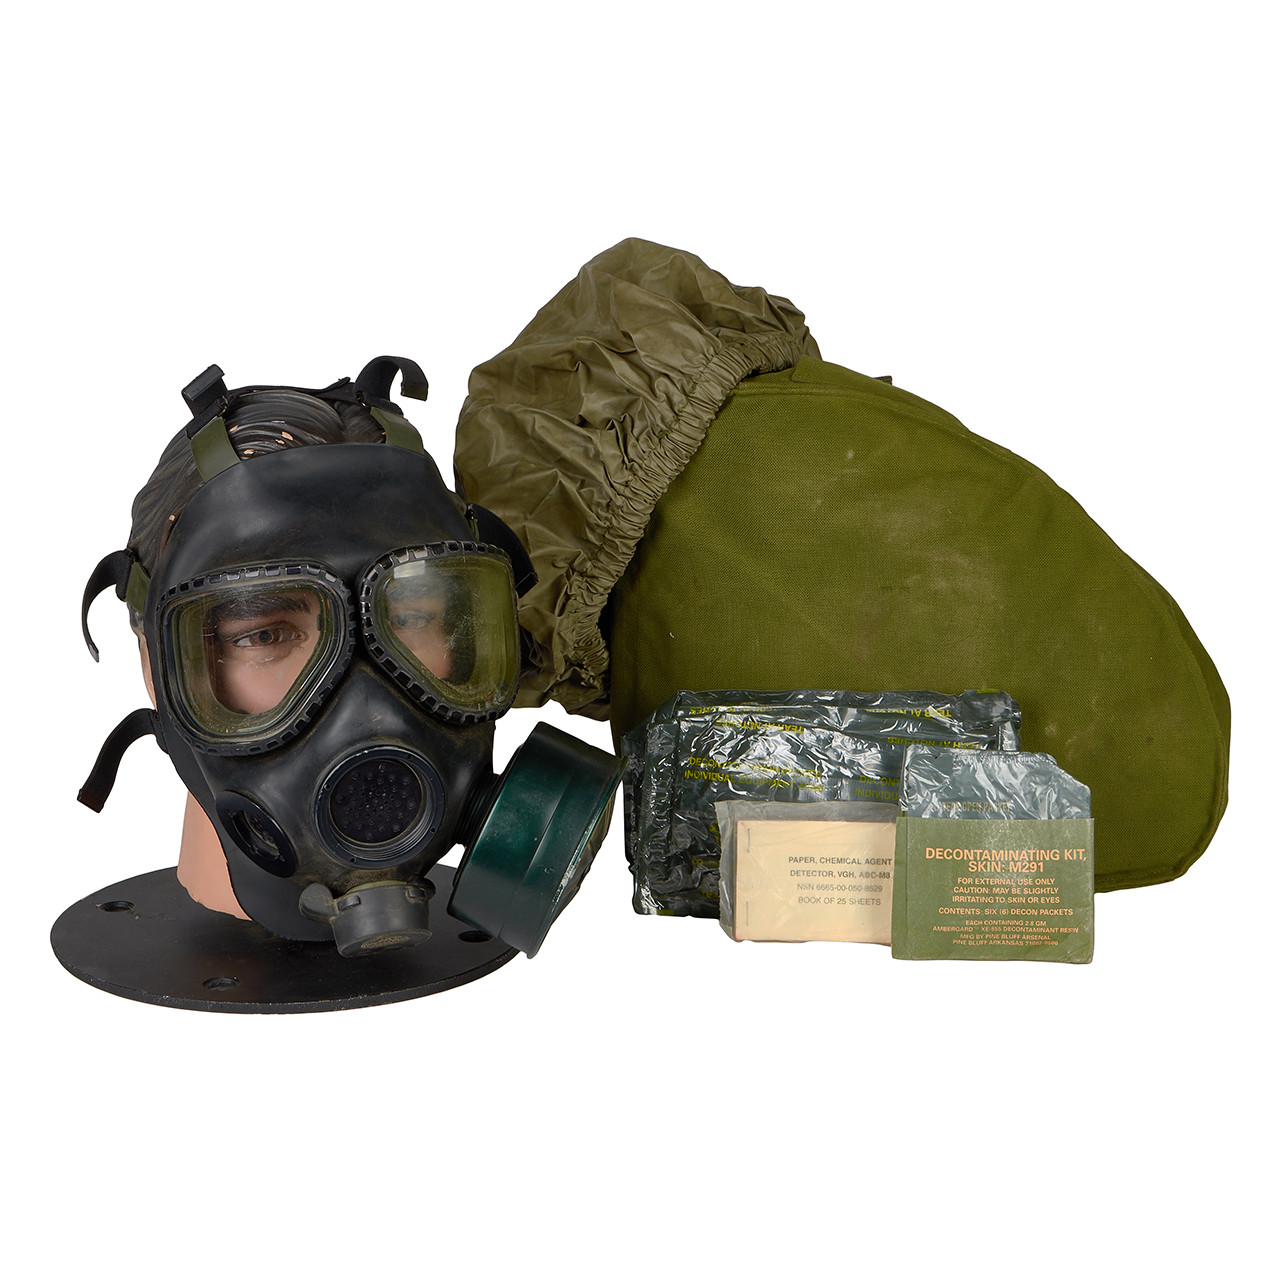 GM20 M40 SERIES G.I. ISSUE GAS MASK